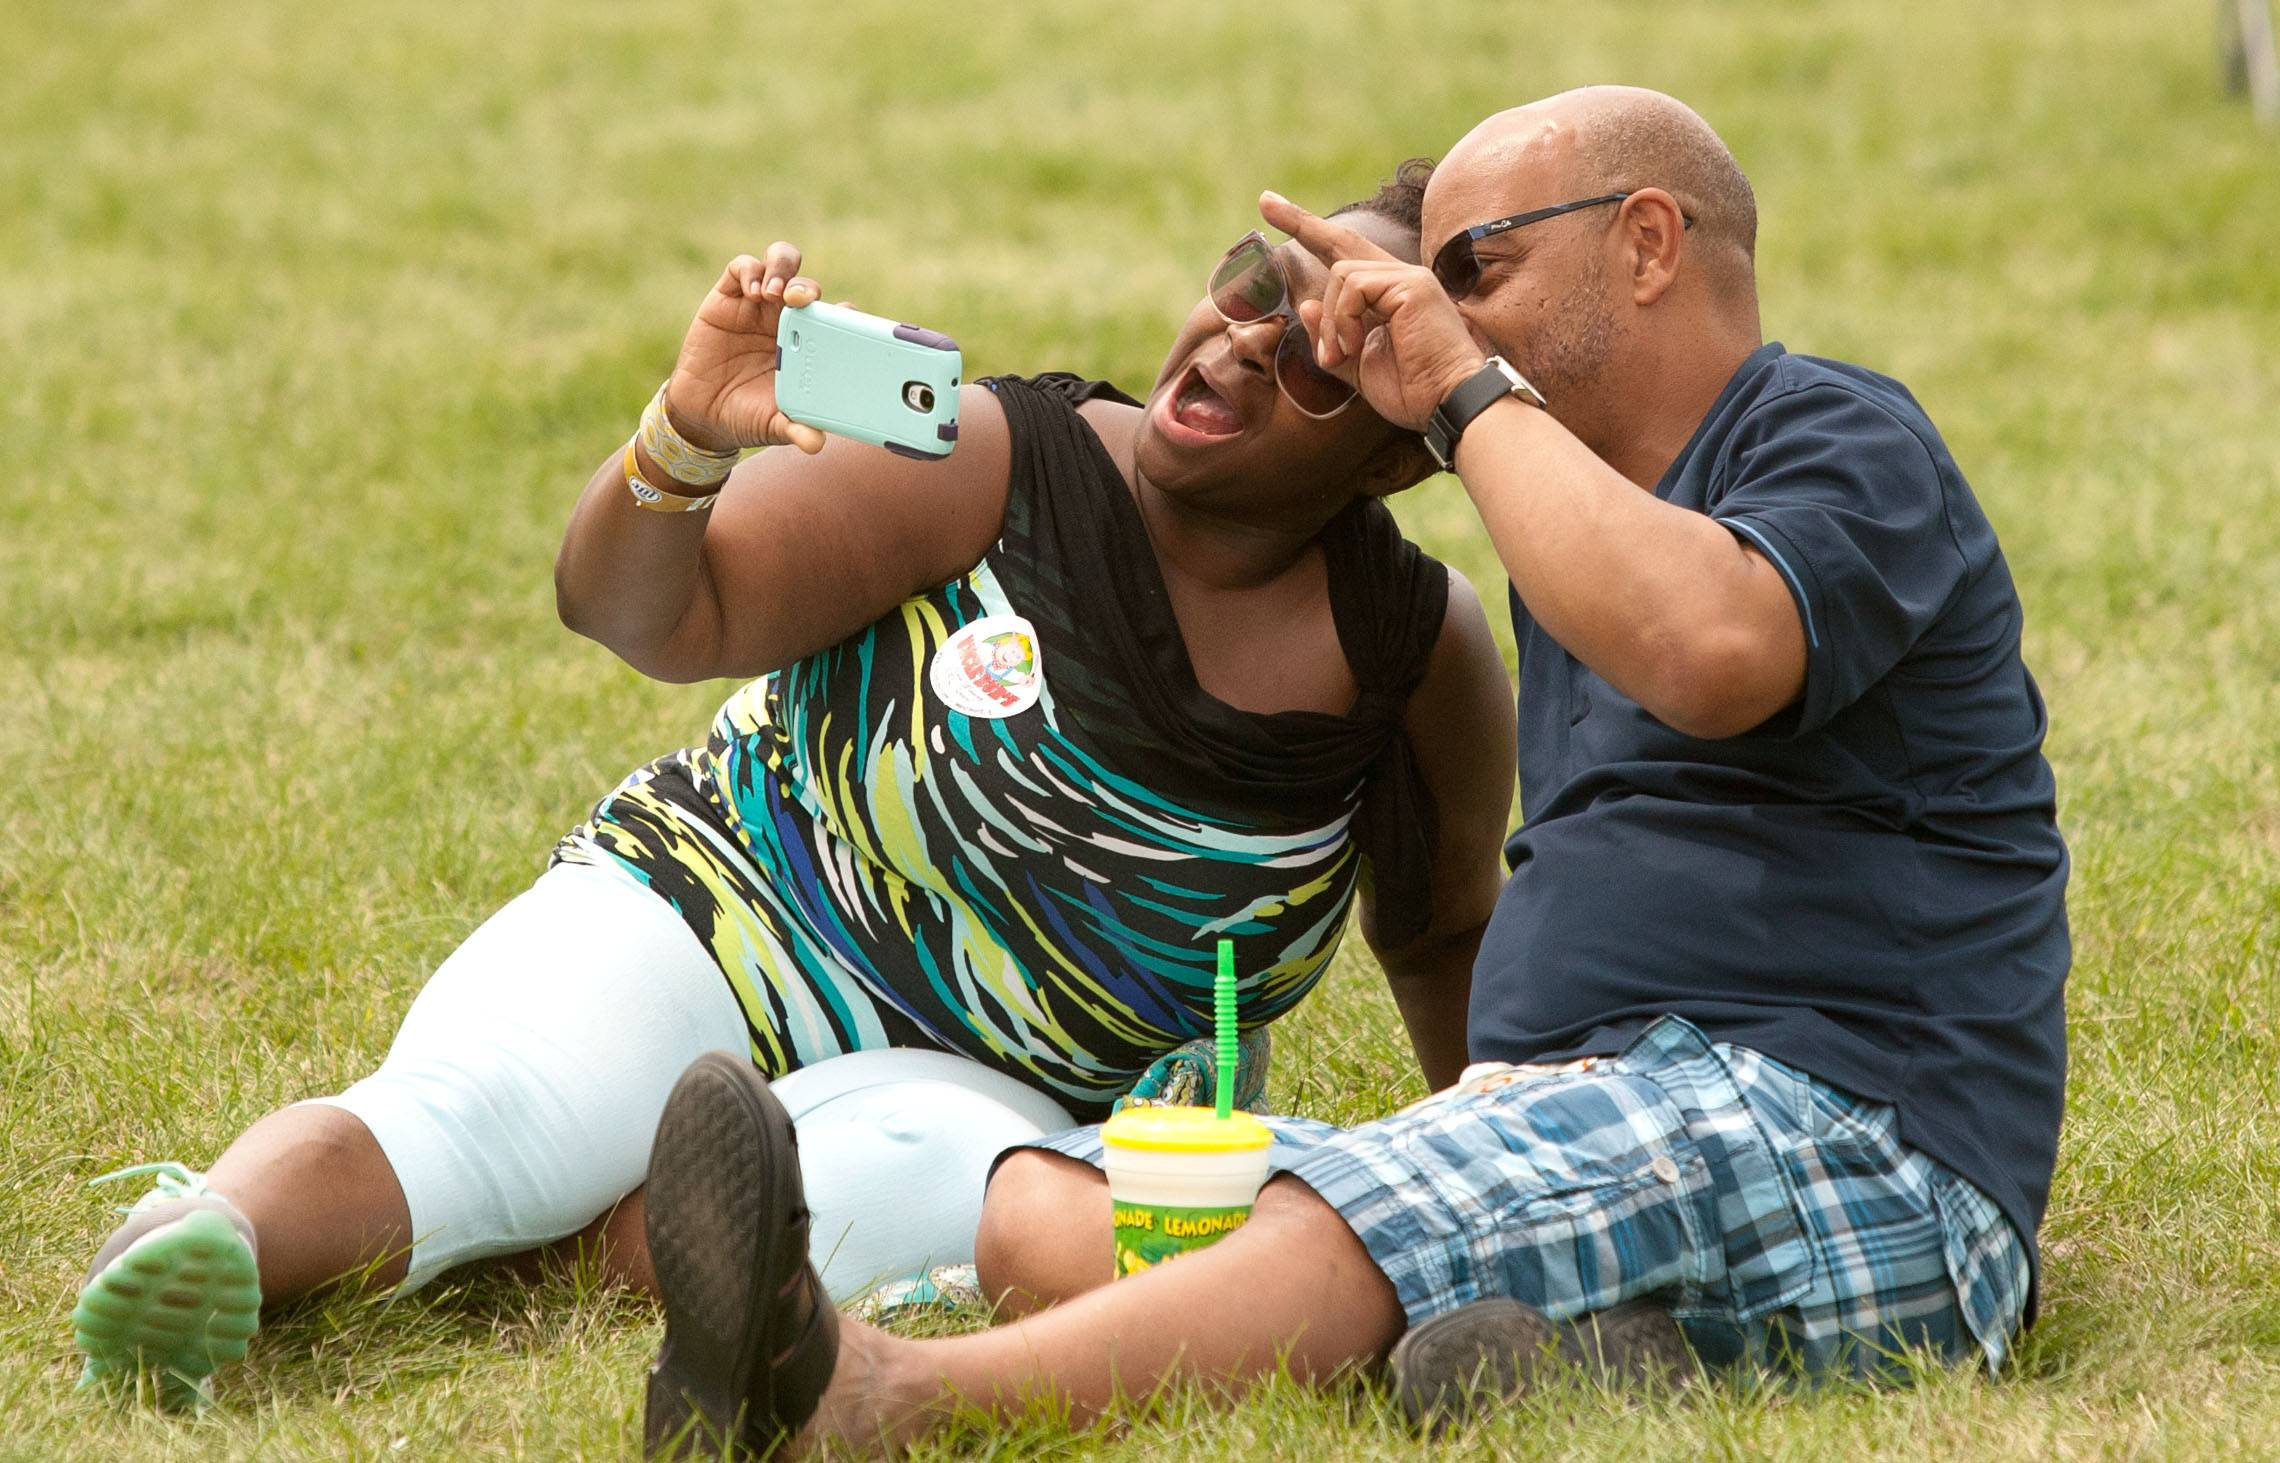 Sarah and Darryl Williams of Elmhurst take a selfie during the first Hispanic Day at Ribfest in Naperville.